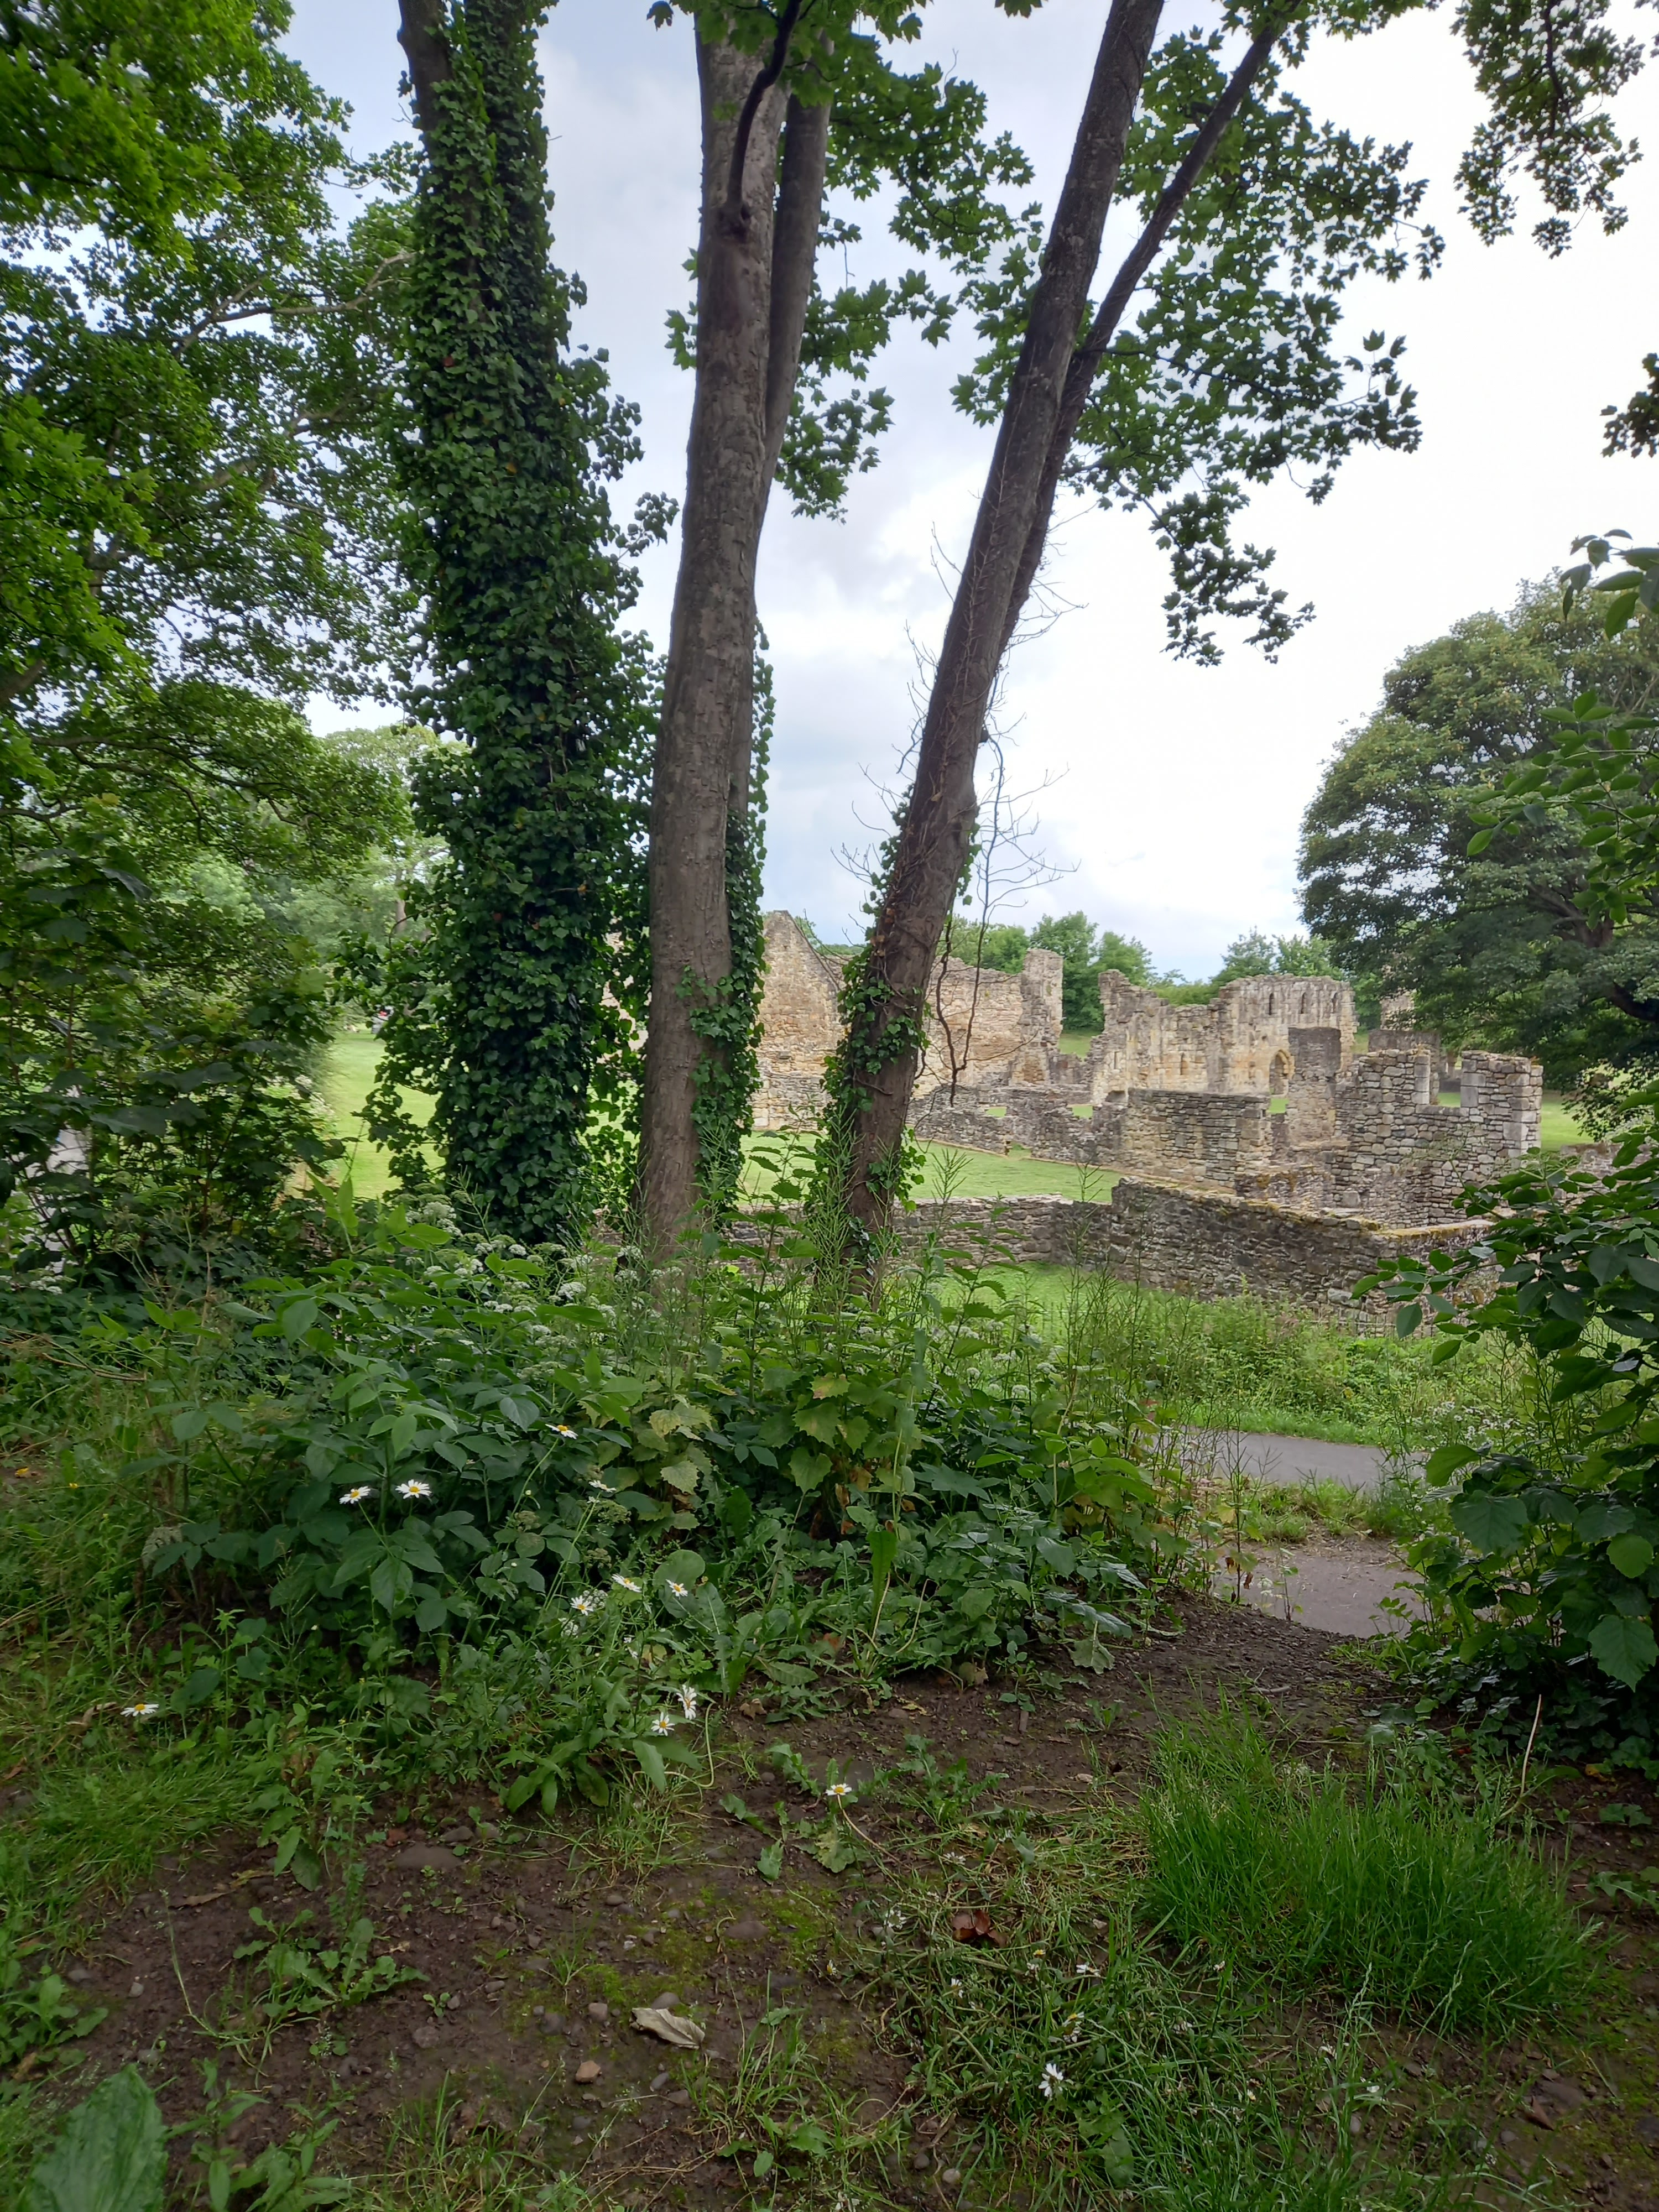 Basingwerk Abbey, Holywell, viewed through the trees on a walk around Holywell taken by Diane Woodrow, author of The Little Yellow Boat